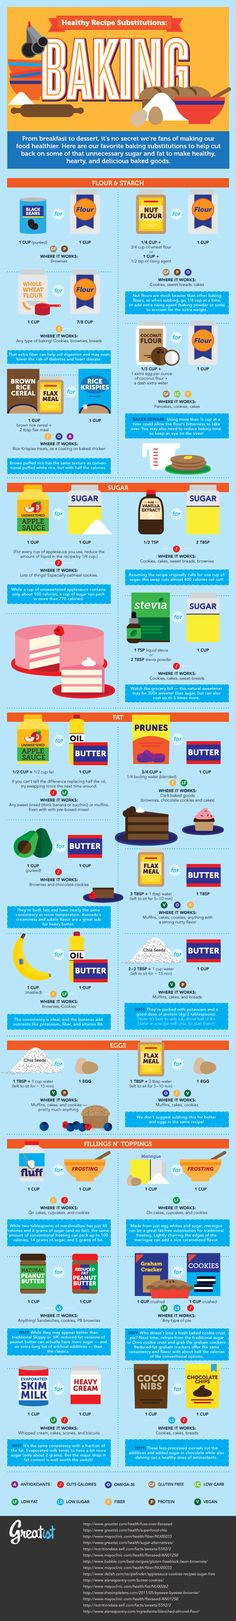 To date the BEST all around guide to healthy eating I've seen! - Imgur